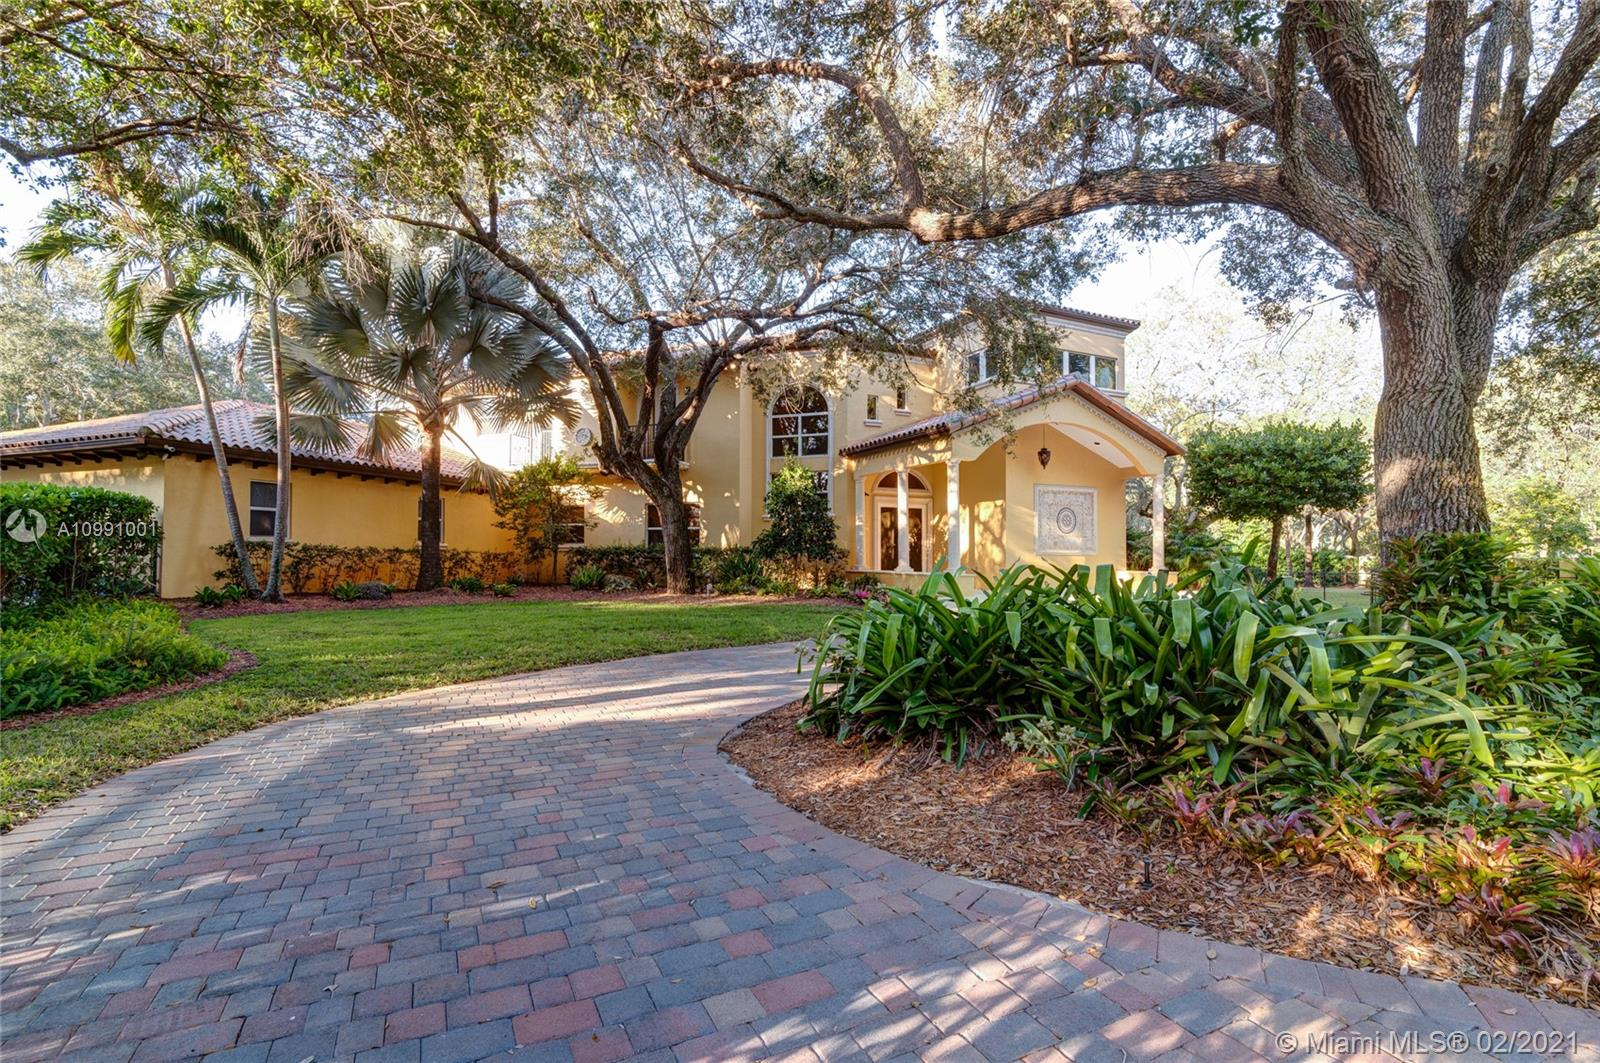 Recent price reduction and 2 new A/C units (05/2021). Meticulously maintained North Palmetto Bay home on a lush landscaped corner acre, impact windows and doors, 8 foot doors and 10 foot ceilings with custom crown molding and baseboards, large master suite with tray ceilings, multiple home office options, custom cabinetry with granite tops thru out, heated pool with jacuzzi spa, 2-gated entries and fenced in yard, central vacuum system, 1st and 2nd floor laundry rooms, golf putting and chipping green, brick paver driveway, security camera system, large patio with covered entertaining area.  North Palmetto Bay neighborhood and close to outstanding schools!